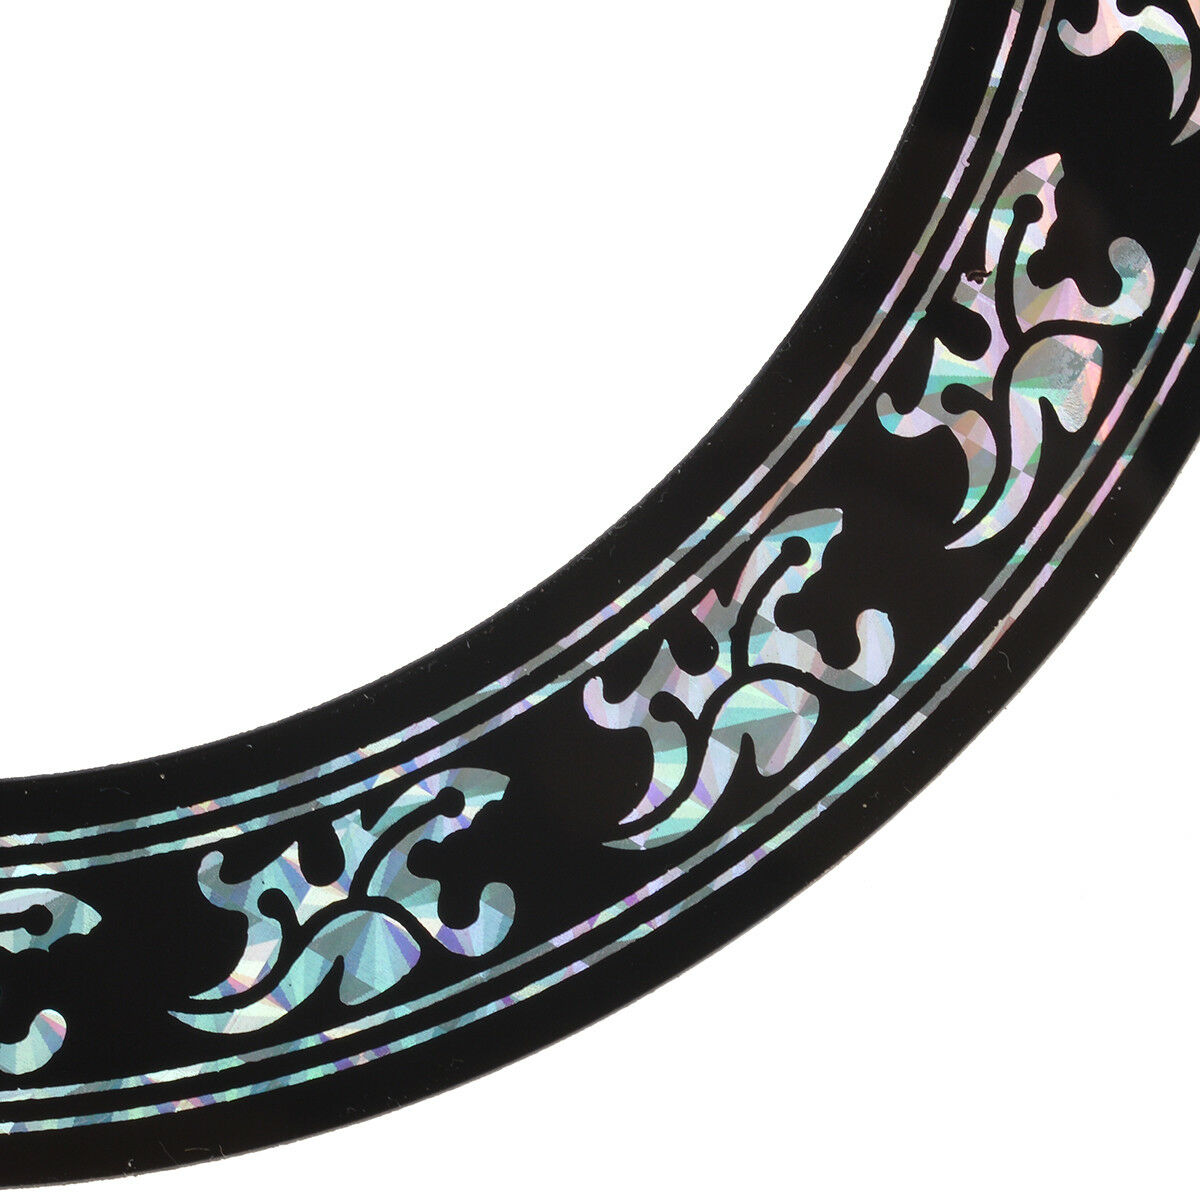 4 pcs soundhole rosette sticker decal for classical acoustic guitar parts 634458672696 ebay. Black Bedroom Furniture Sets. Home Design Ideas